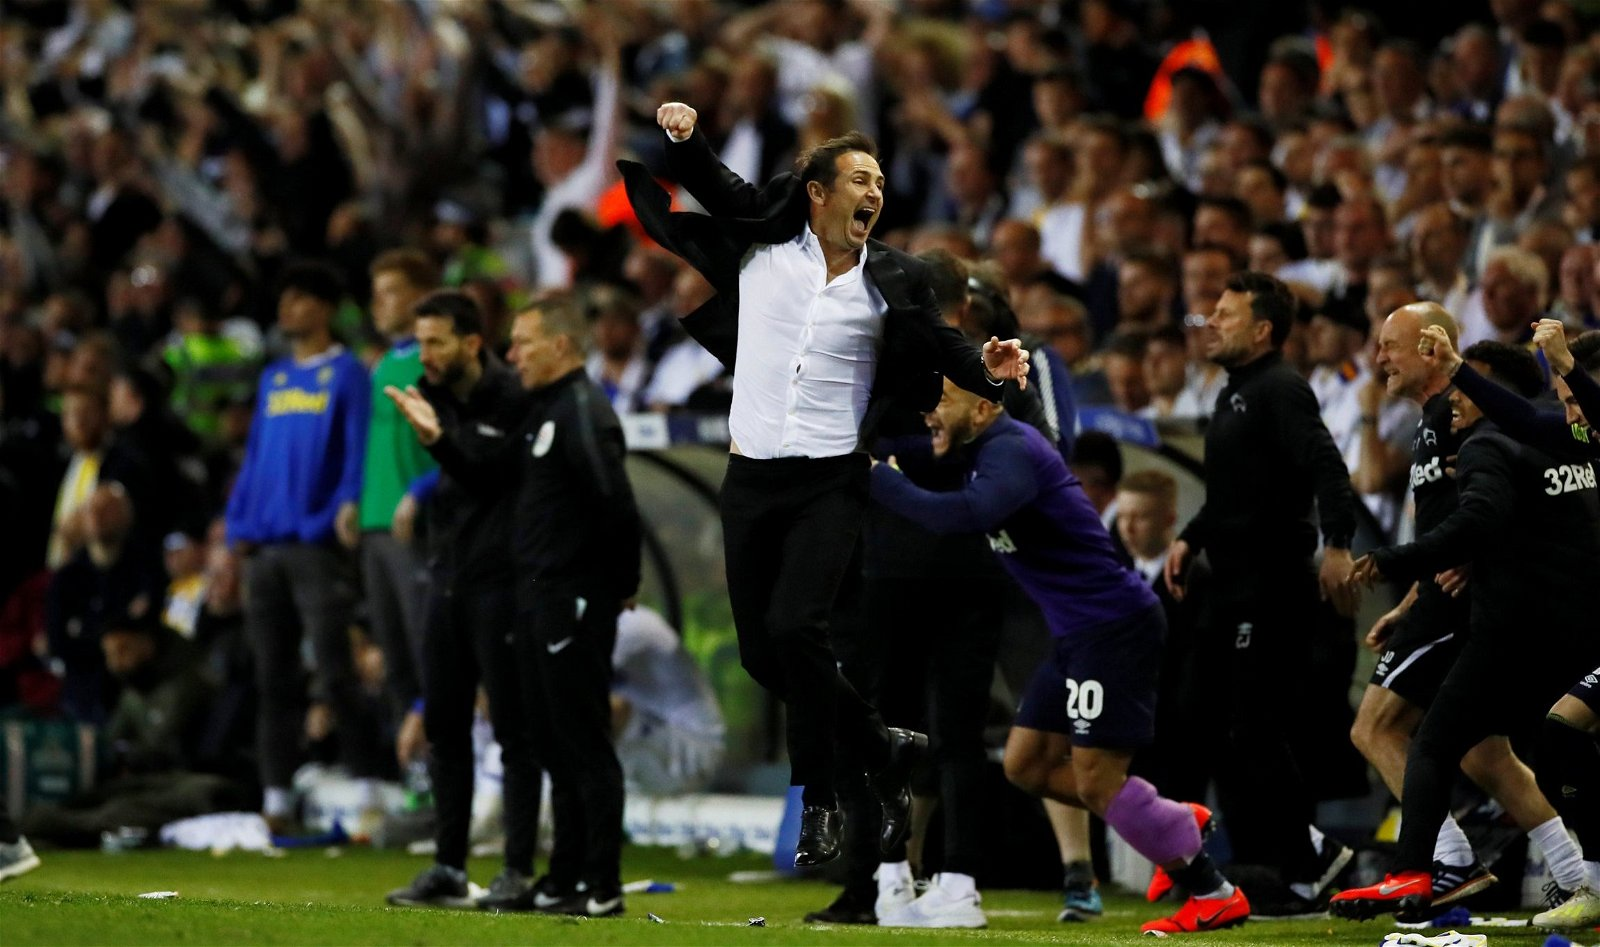 Lampard e1558712863962 - Life after Sarri: Chelsea's future is entrenched within Championship play-off final - opinion